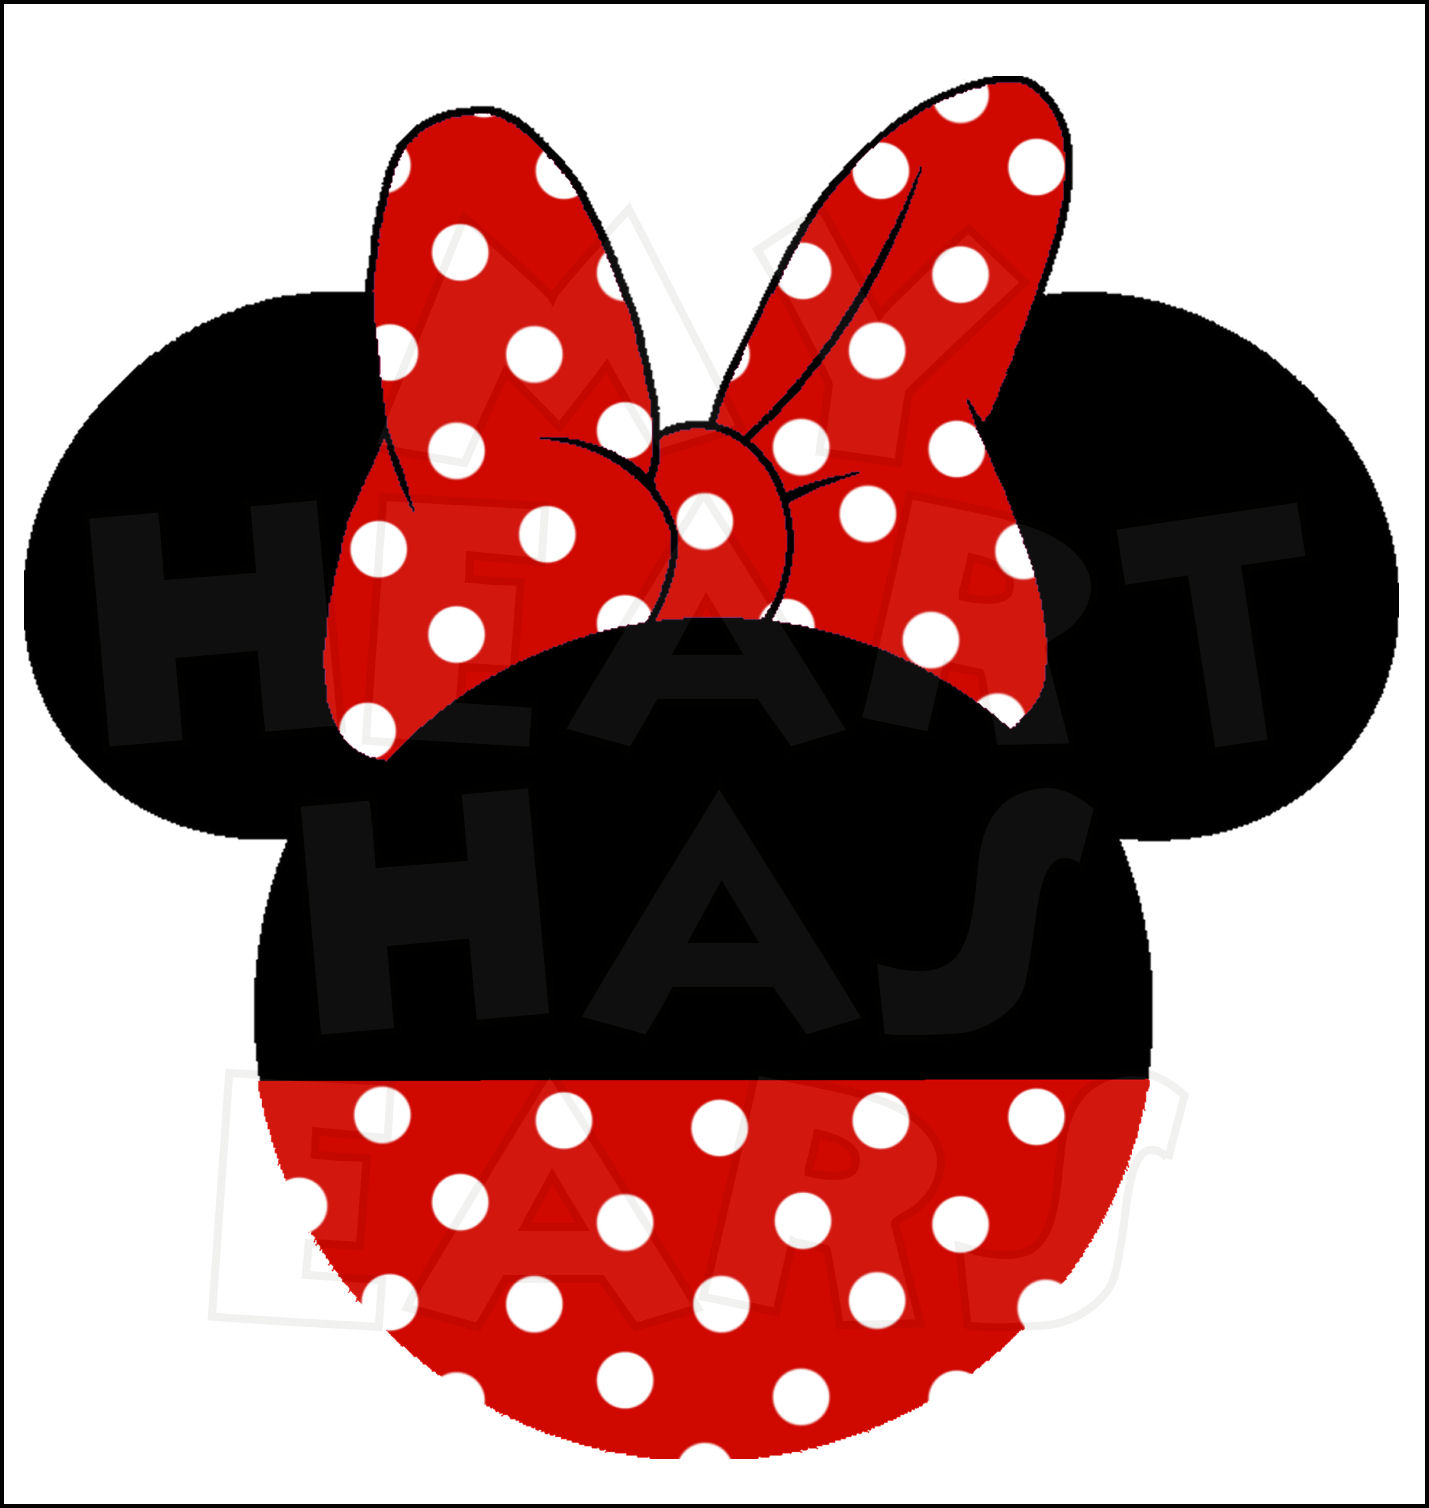 Red Minnie Mouse Face Clipart - Minnie Mouse Silhouette Clip Art